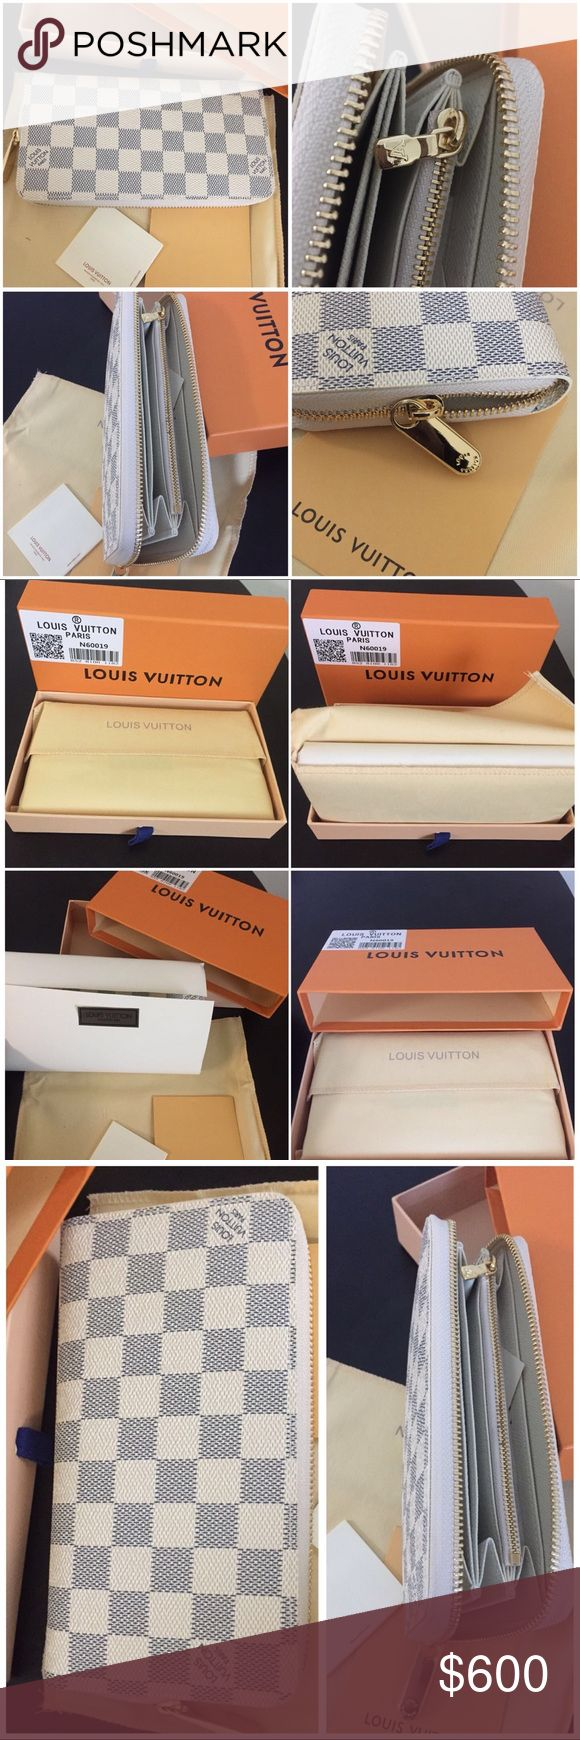 Louis Vuitton Damier Azur Women's wallet Used like new Louis Vuitton Damier Azur Women's wallet comes with box and dust bag Bags Wallets